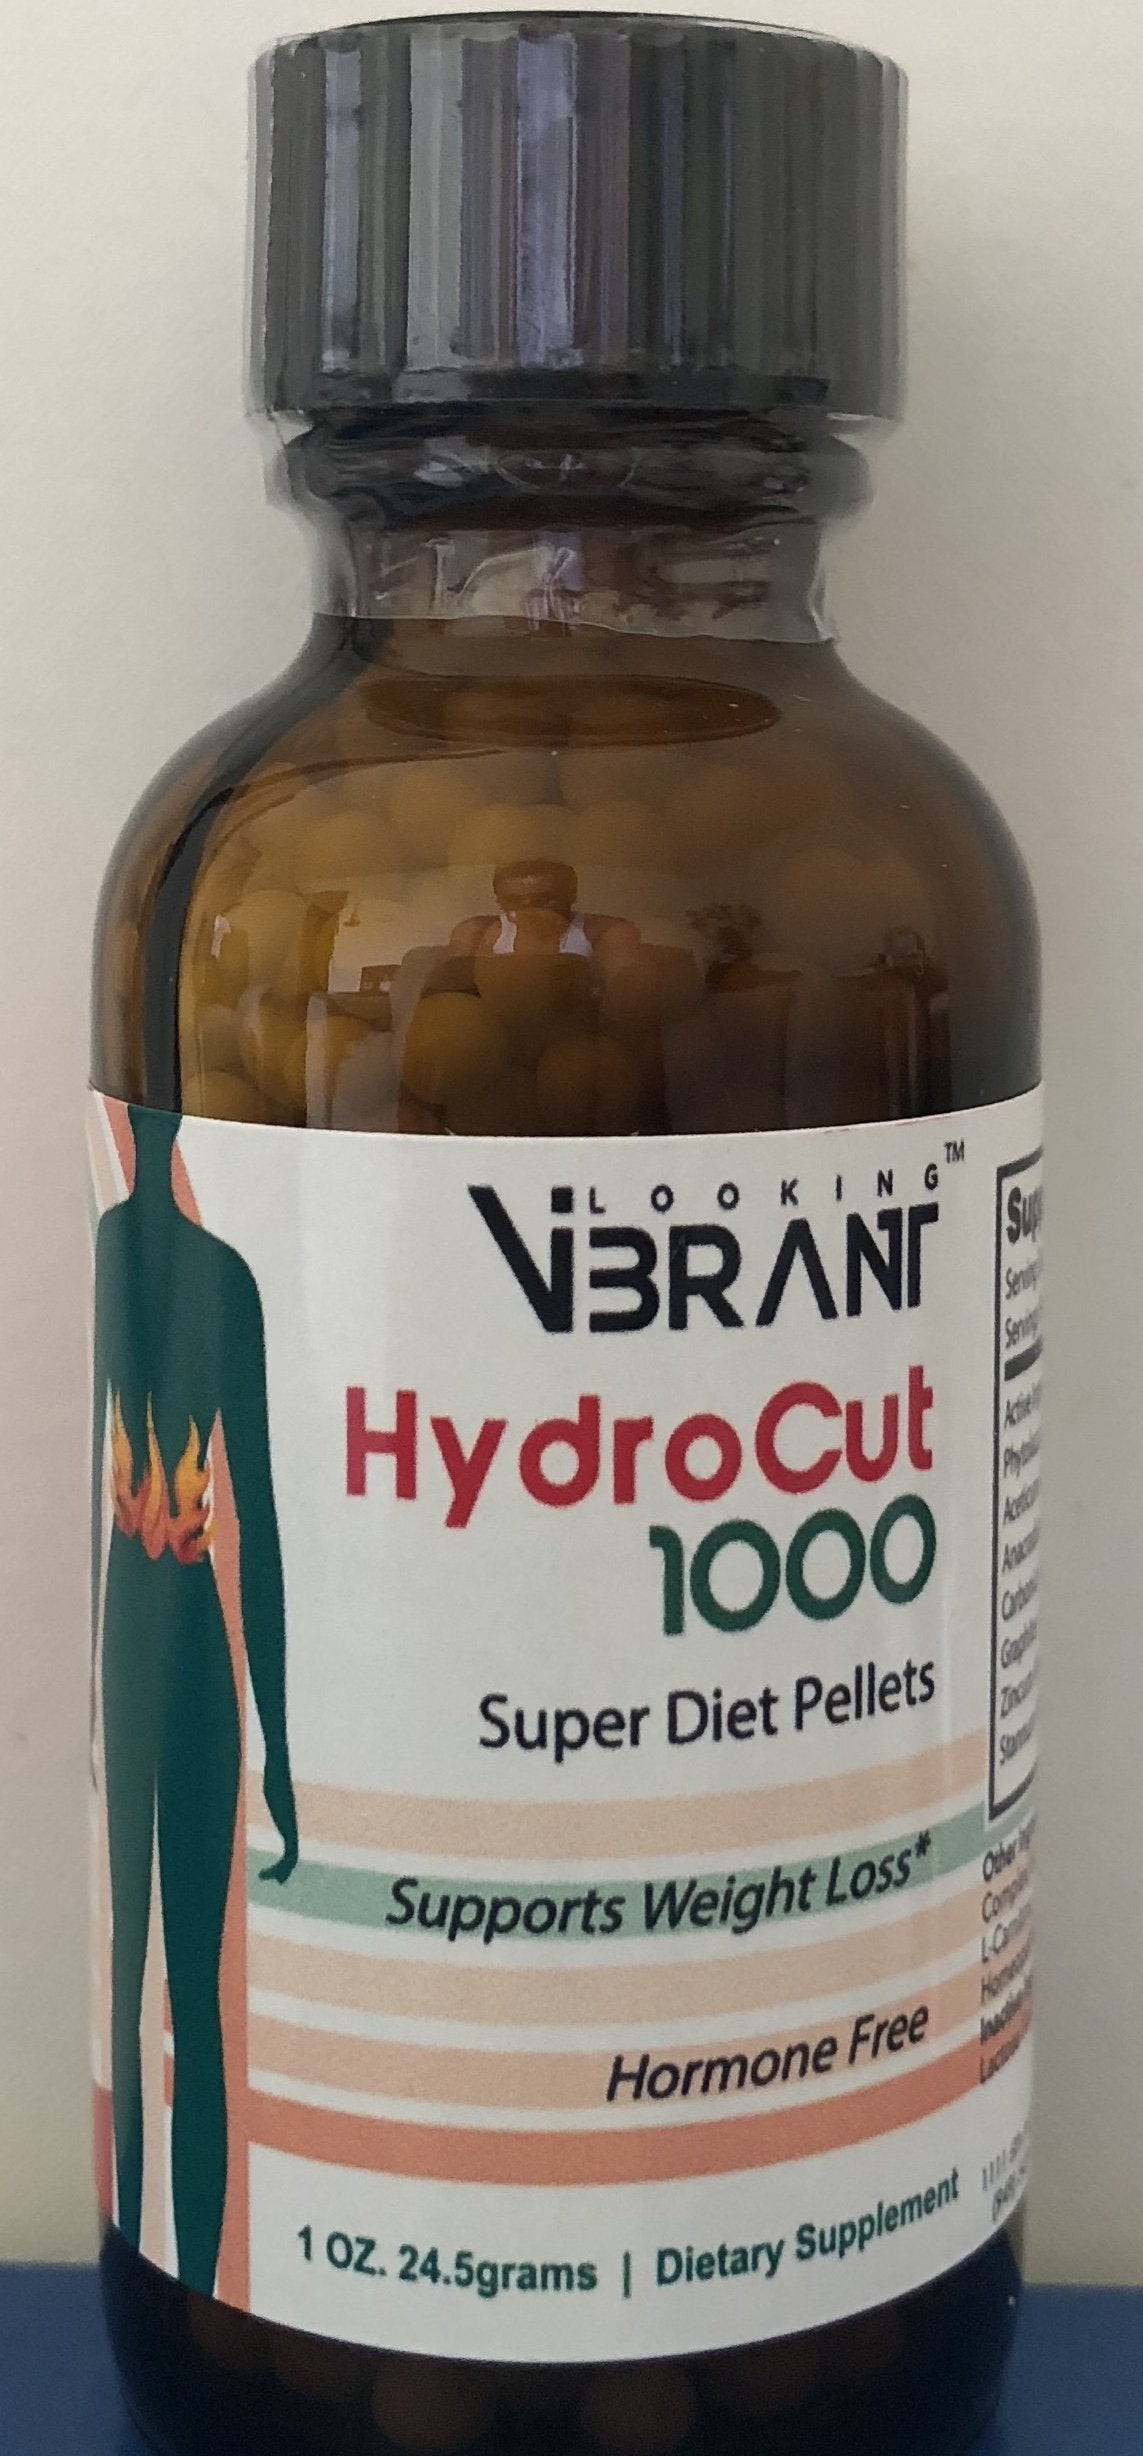 HYDROCUT1000 (Weight Control) - lookingvibrantcom